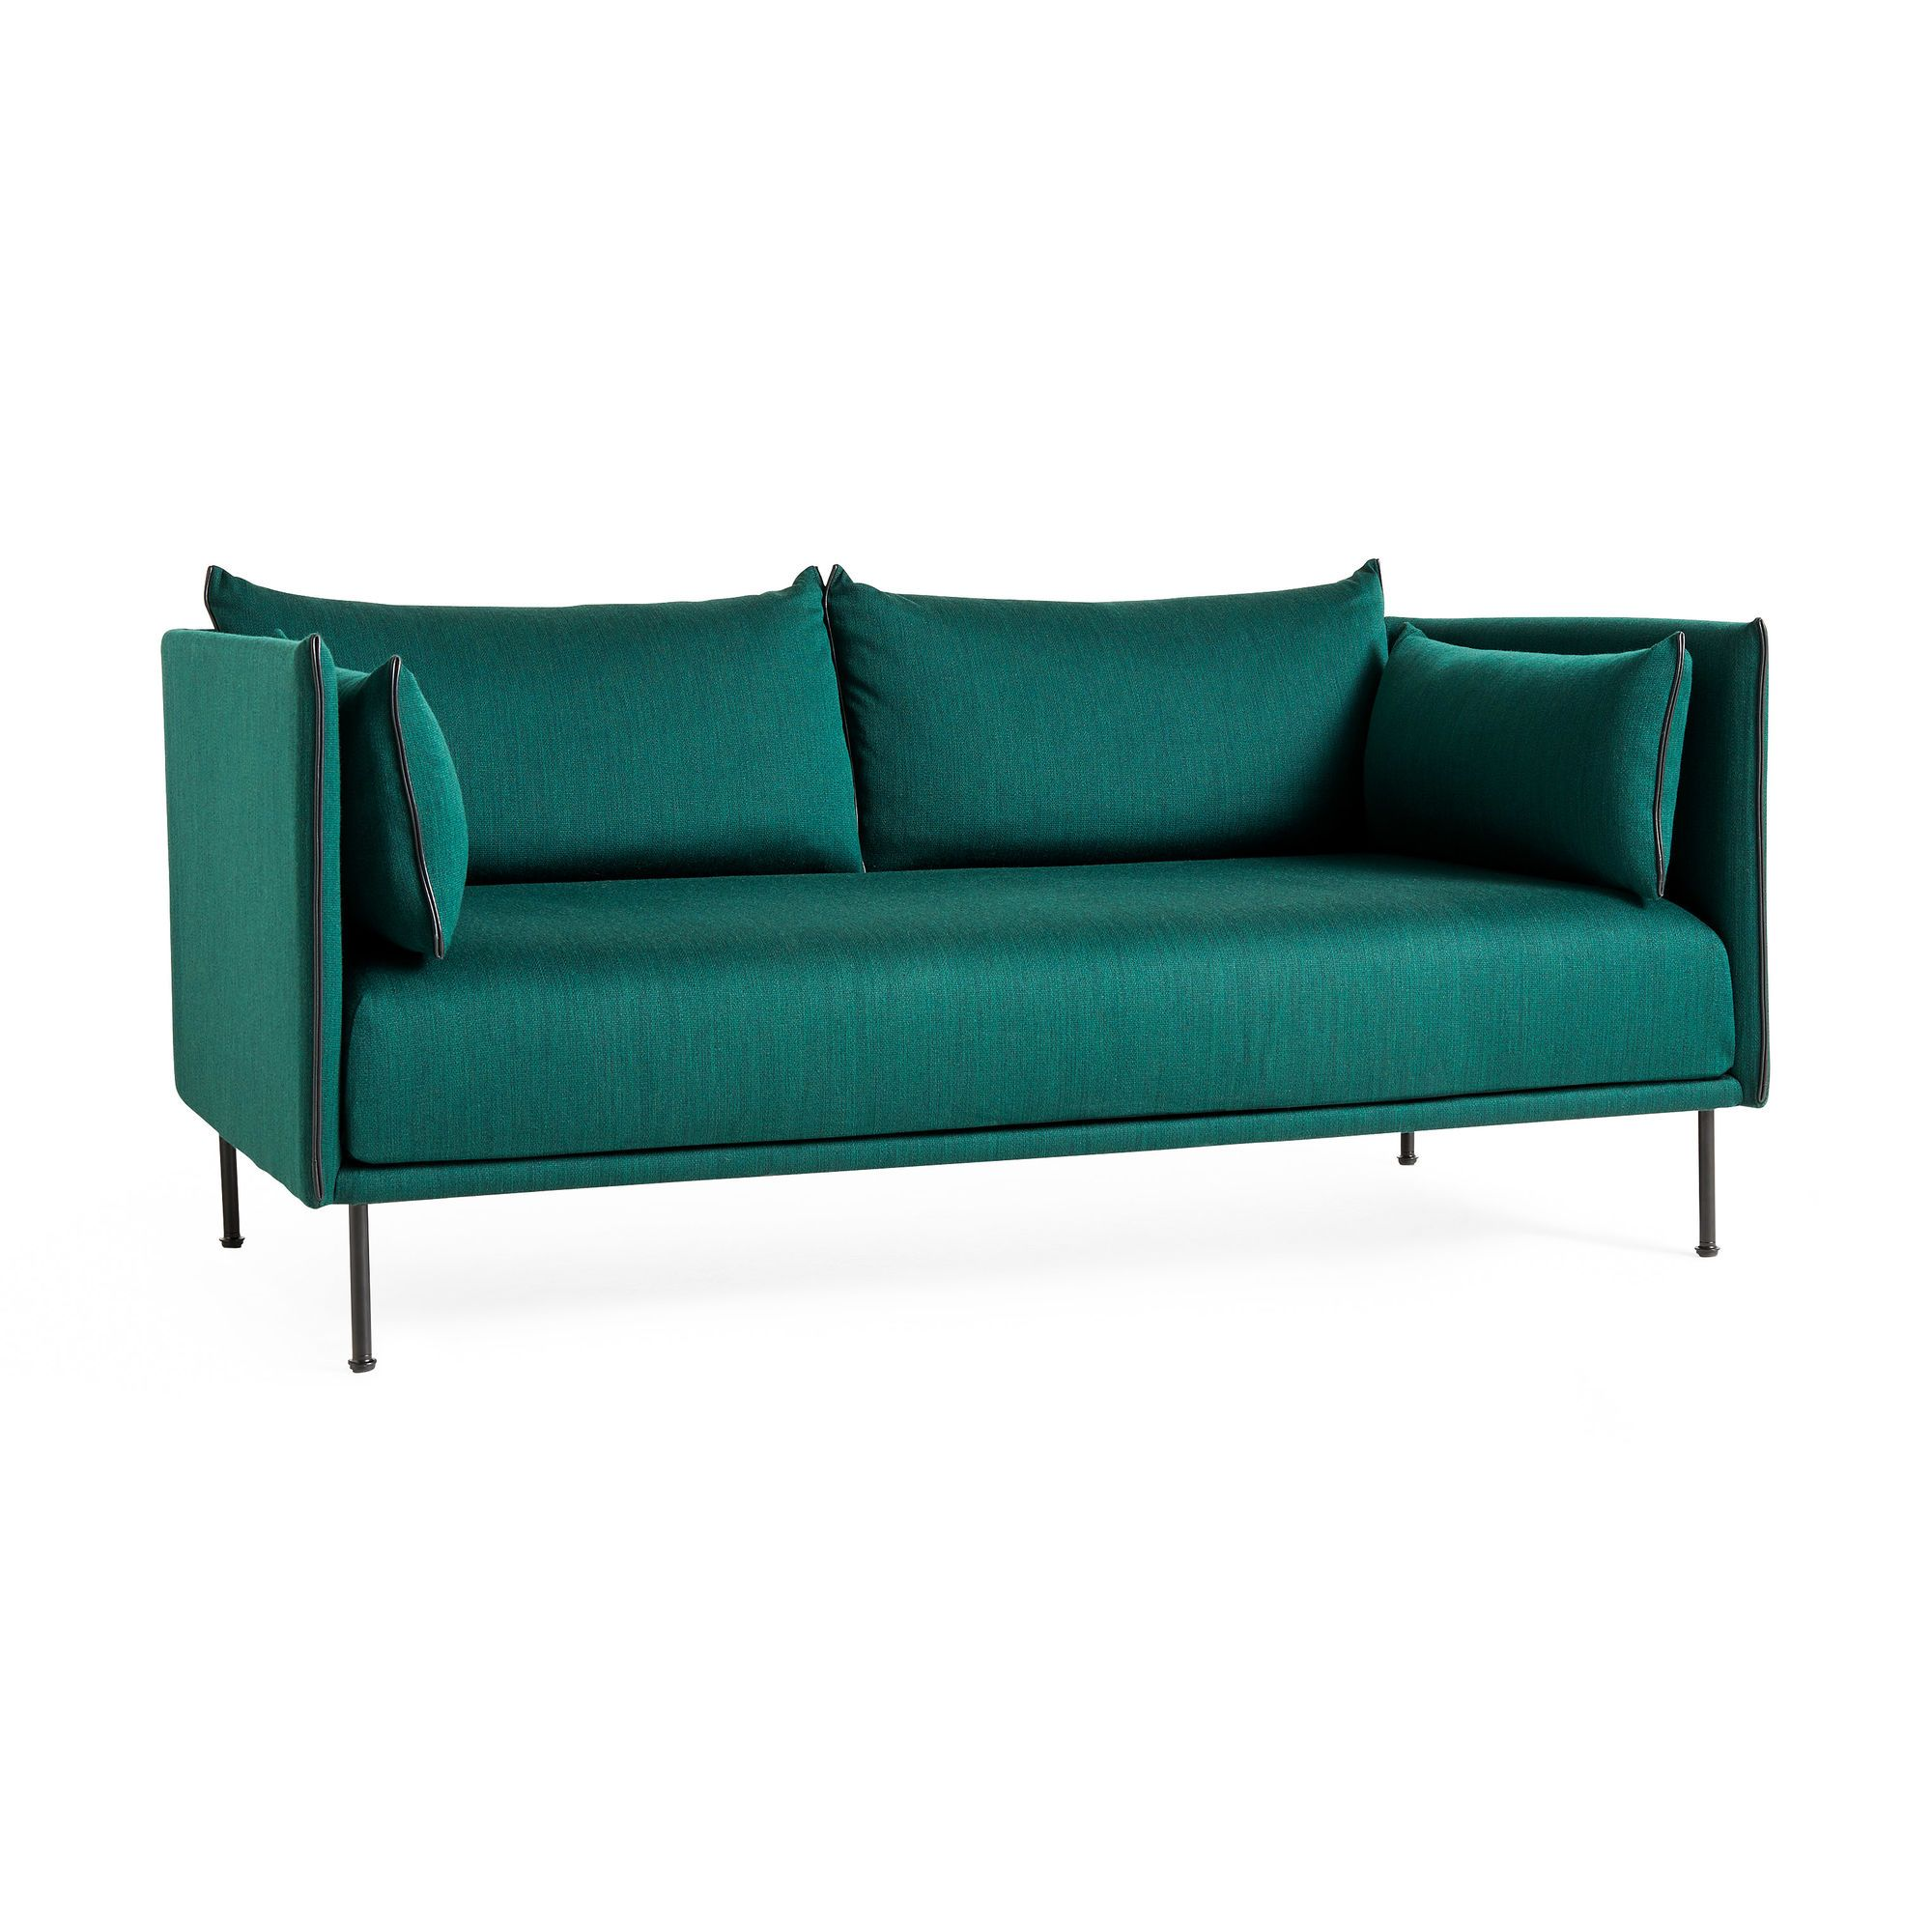 Hay Silhouette Two Seater Sofa In Color Sofa Seater Sofa Furniture